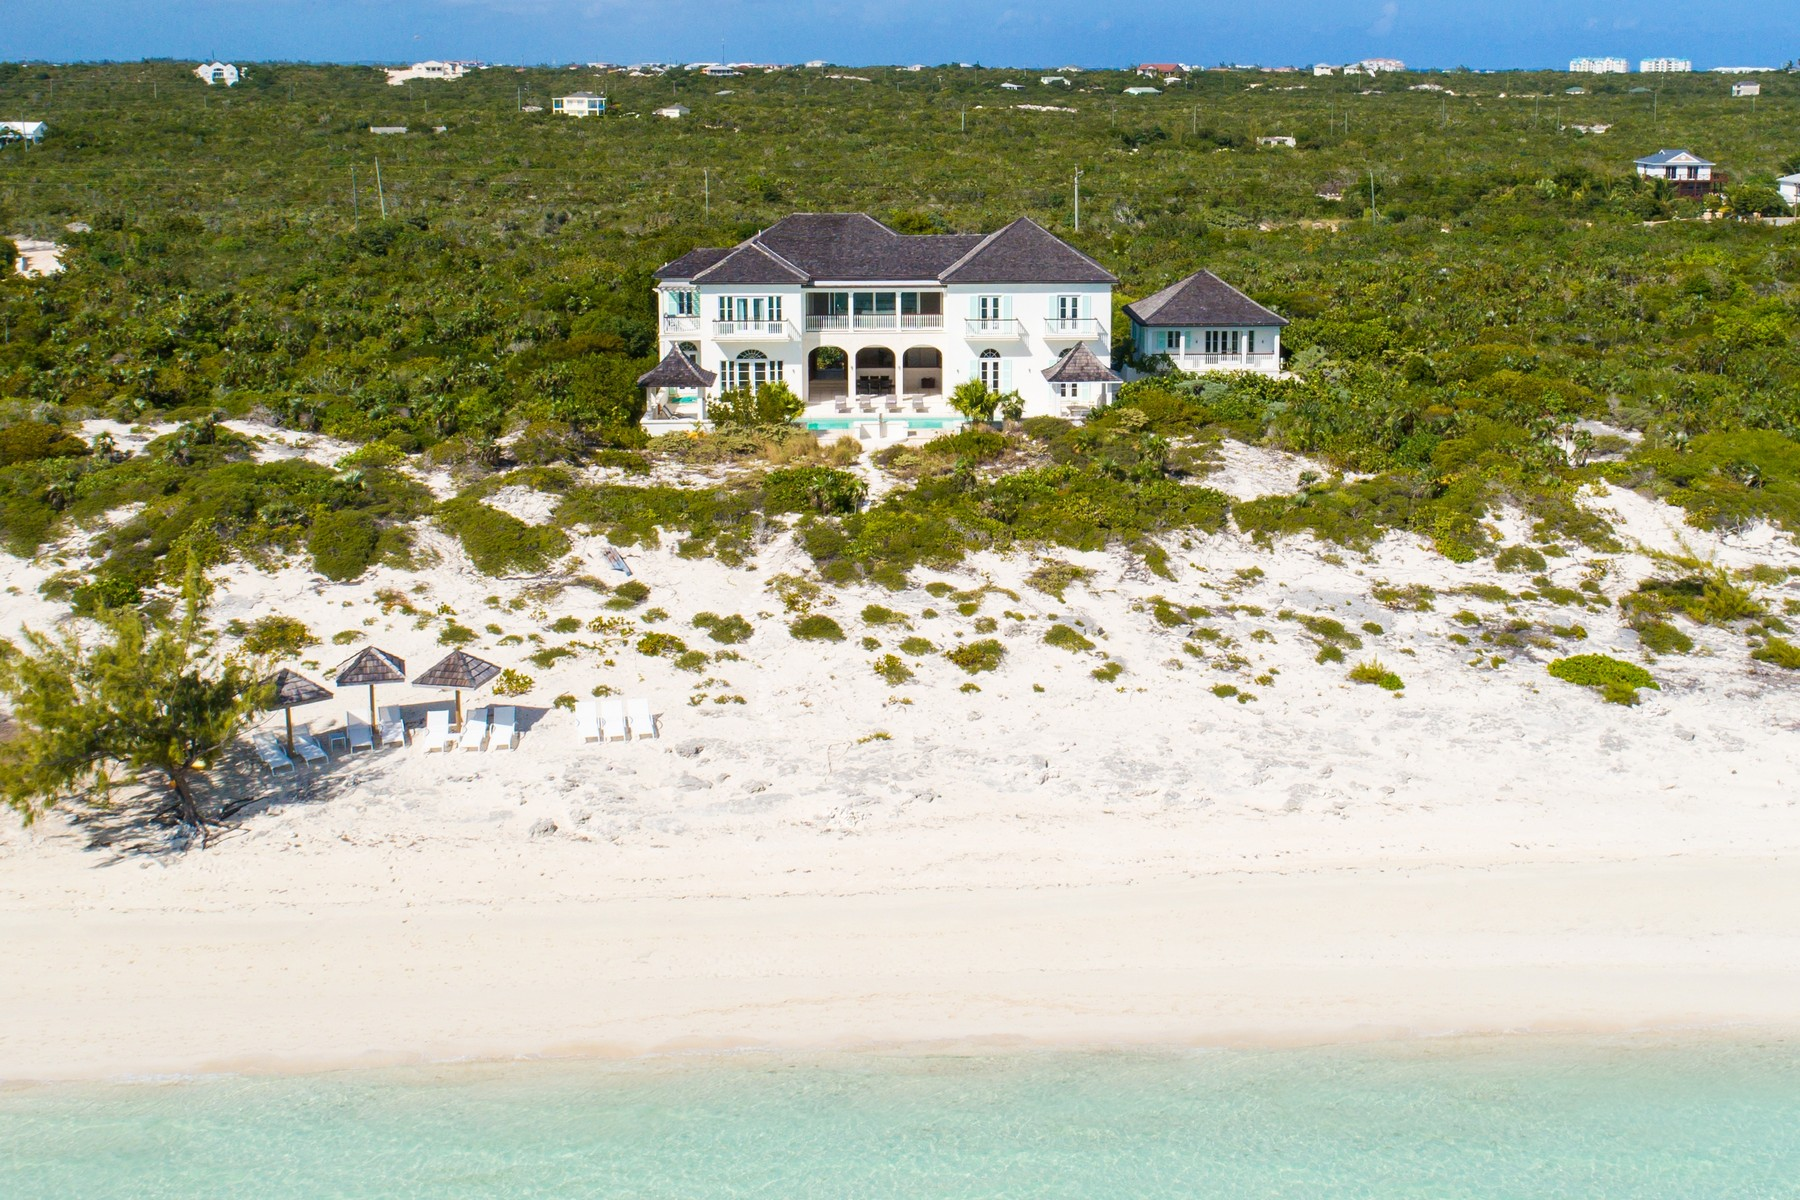 Single Family Home for Sale at Long Bay House Long Bay, Turks And Caicos Islands